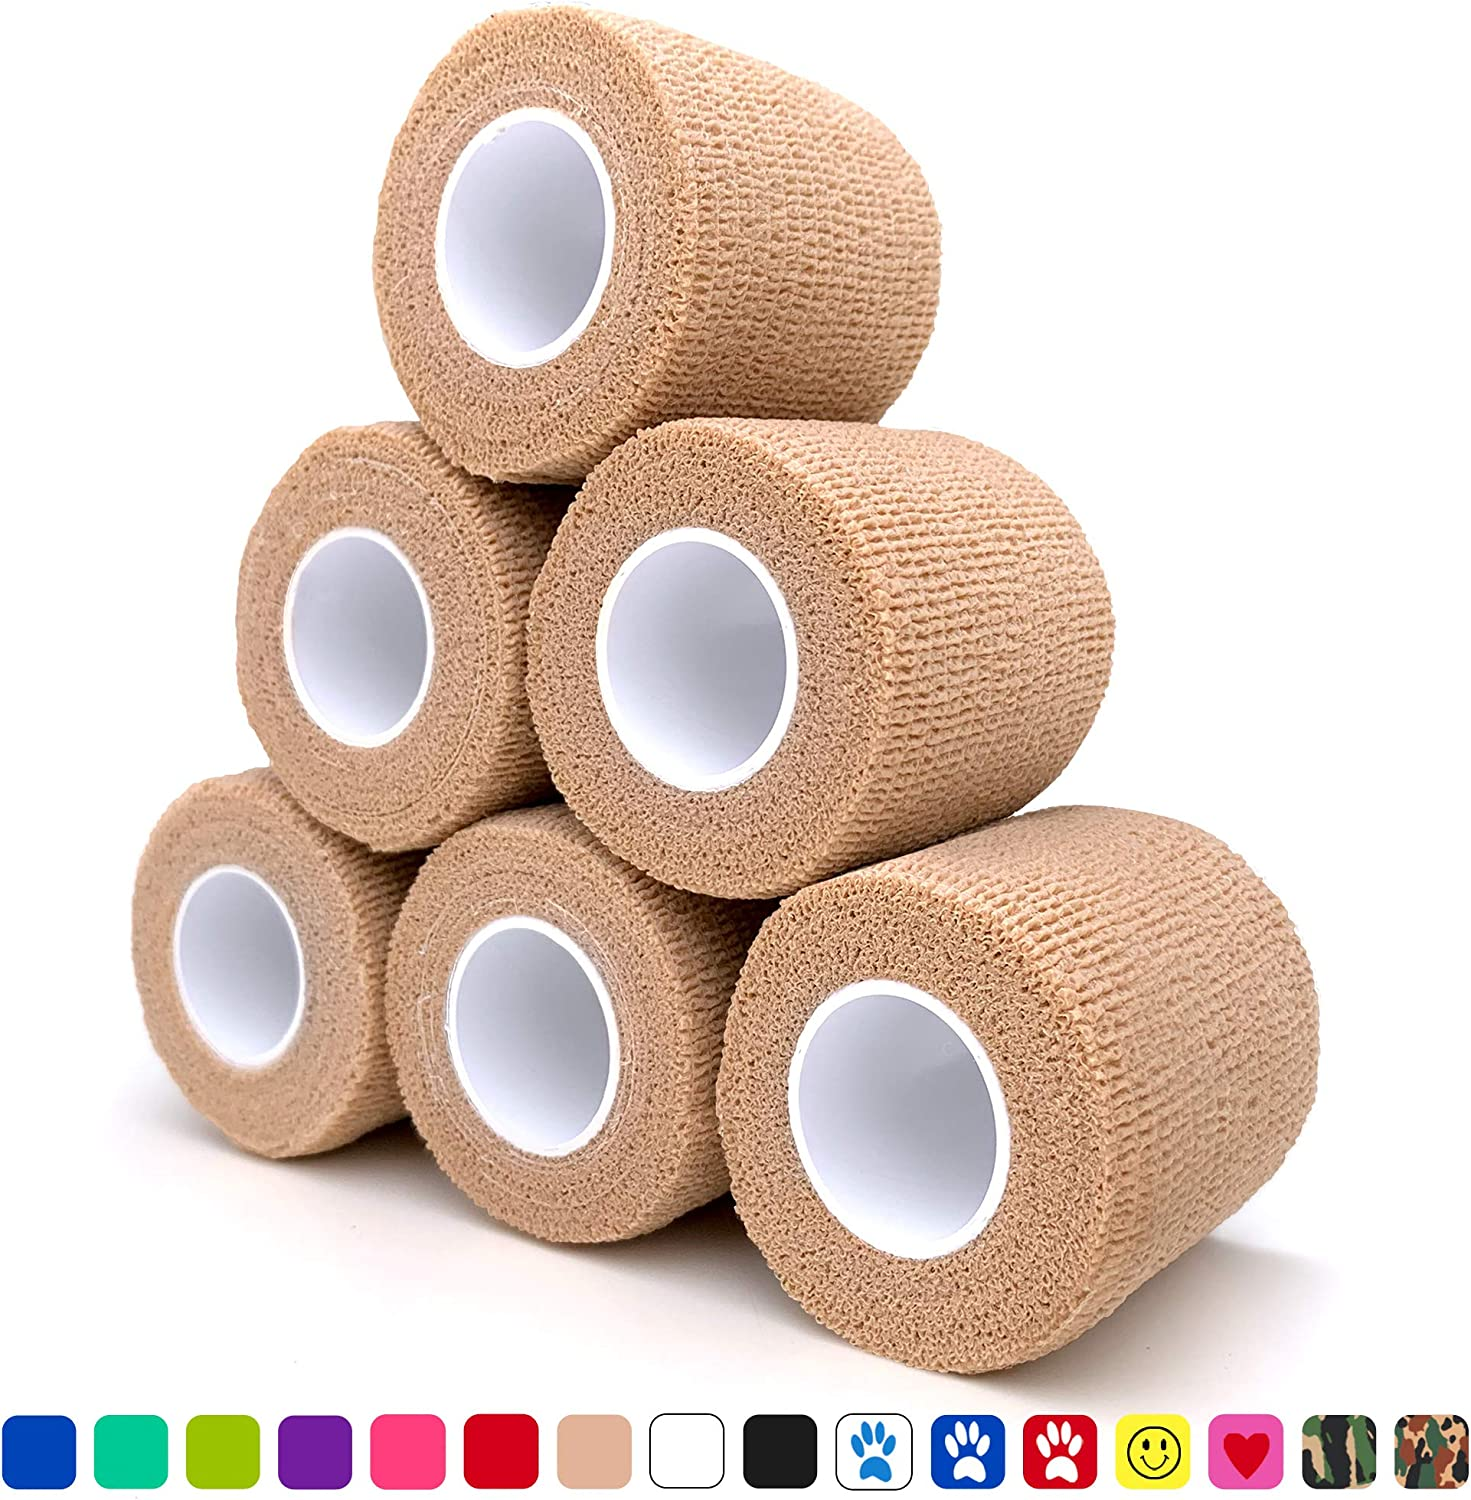 "Cohesive Bandage 2"" x 5 Yards, 6 Rolls, Self Adherent Wrap Medical Tape, Adhesive Flexible Breathable First Aid Gauze Ideal for Stretch Athletic, Ankle Sprains & Swelling, Sports, Tan"